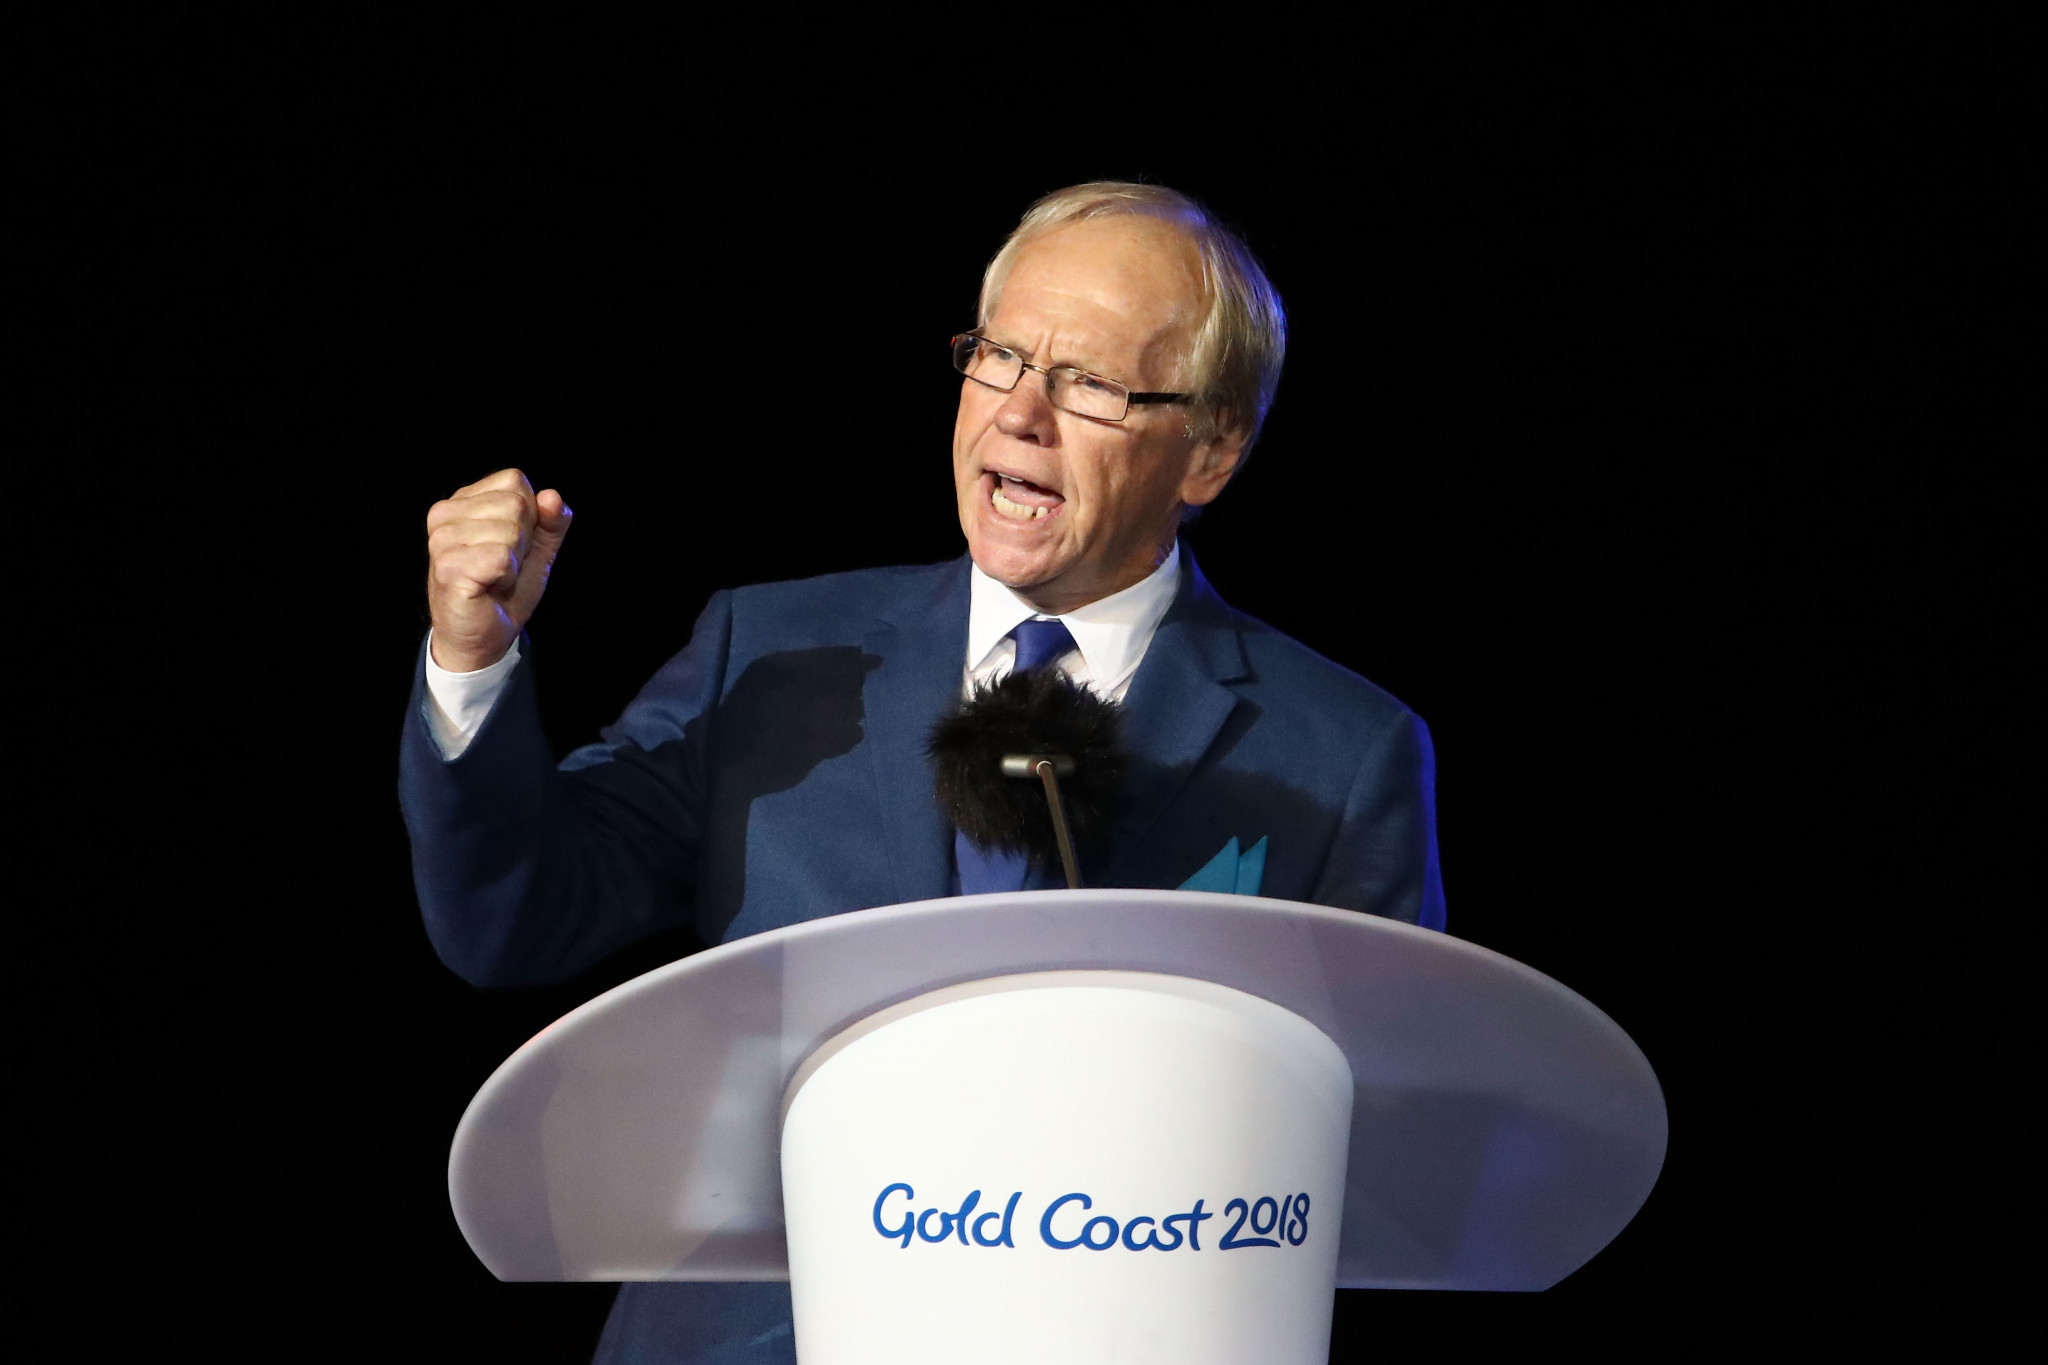 Potential Queensland bid for Olympic Games would require Federal Government backing, Gold Coast 2018 chairman claims